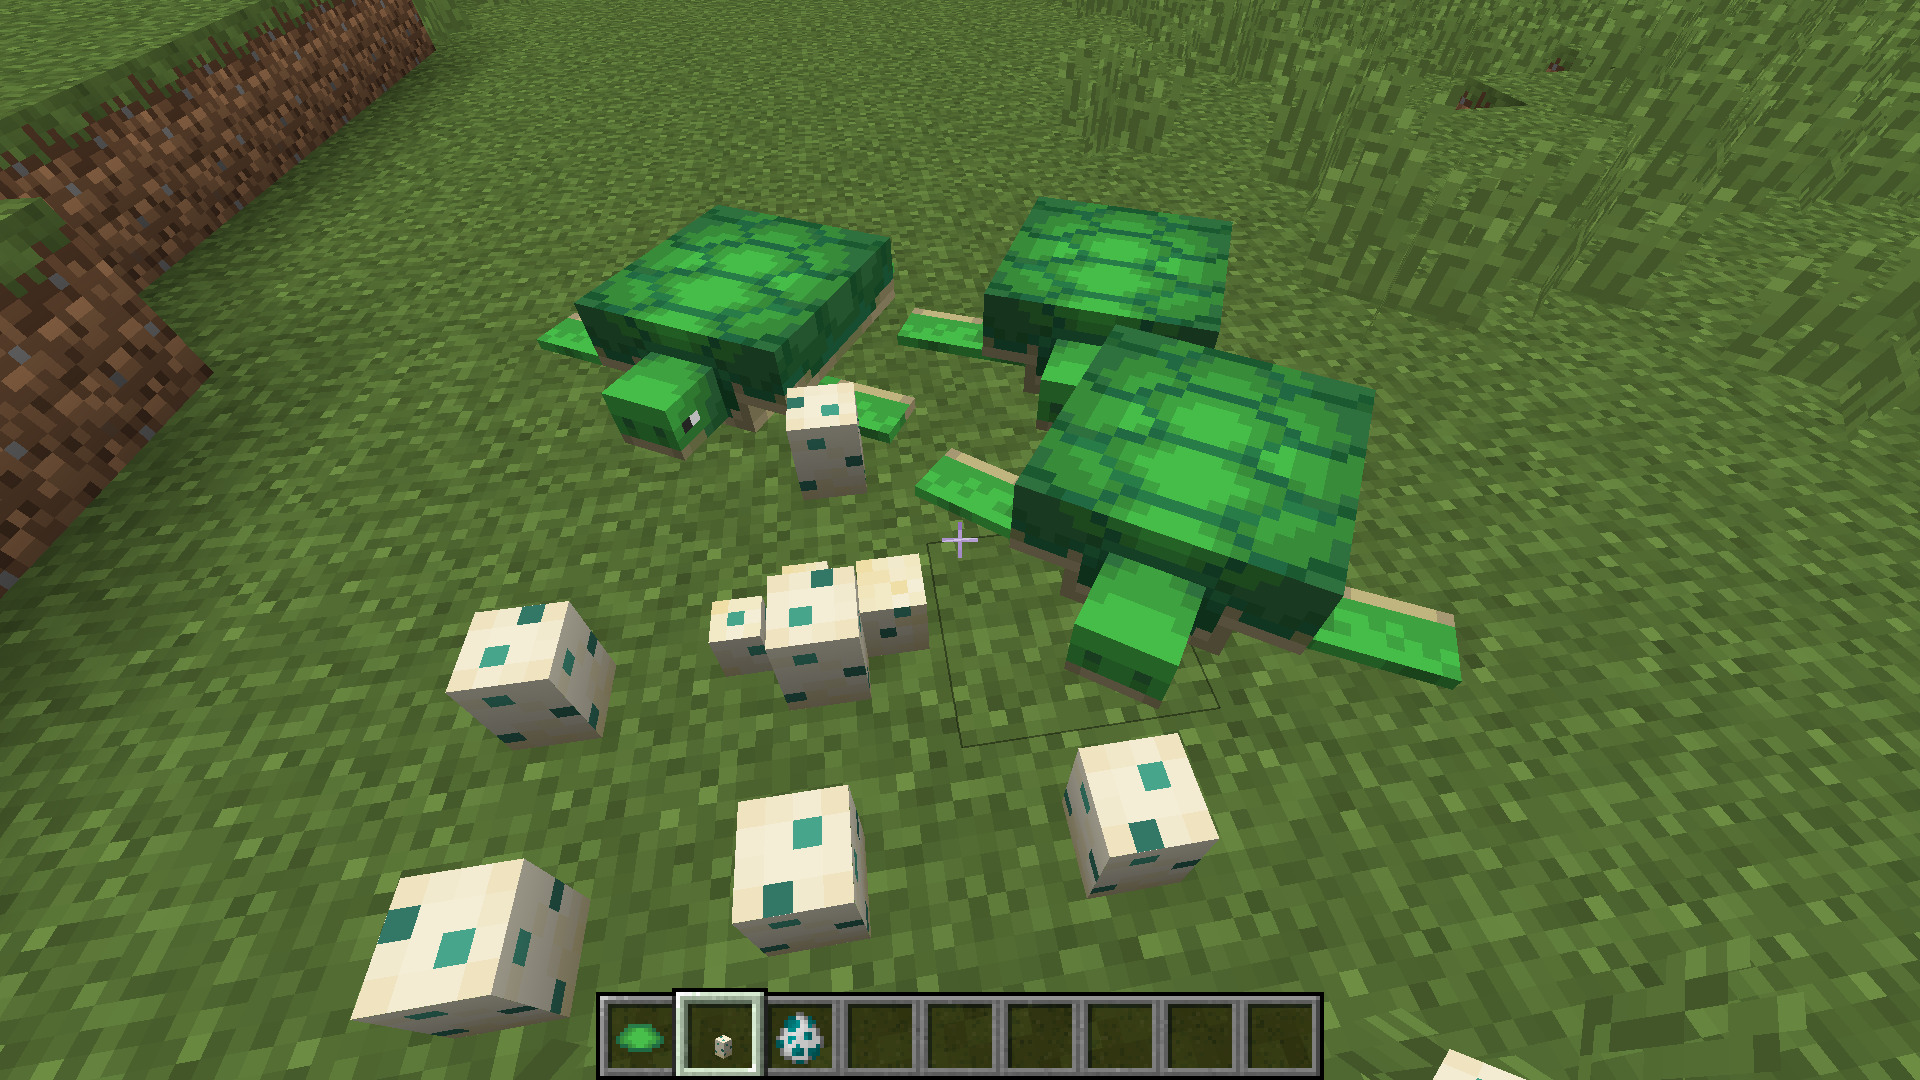 Minecraft Mobs Explored: Turtle, A Passive Mob That May Be Worth Raising And Nurturing